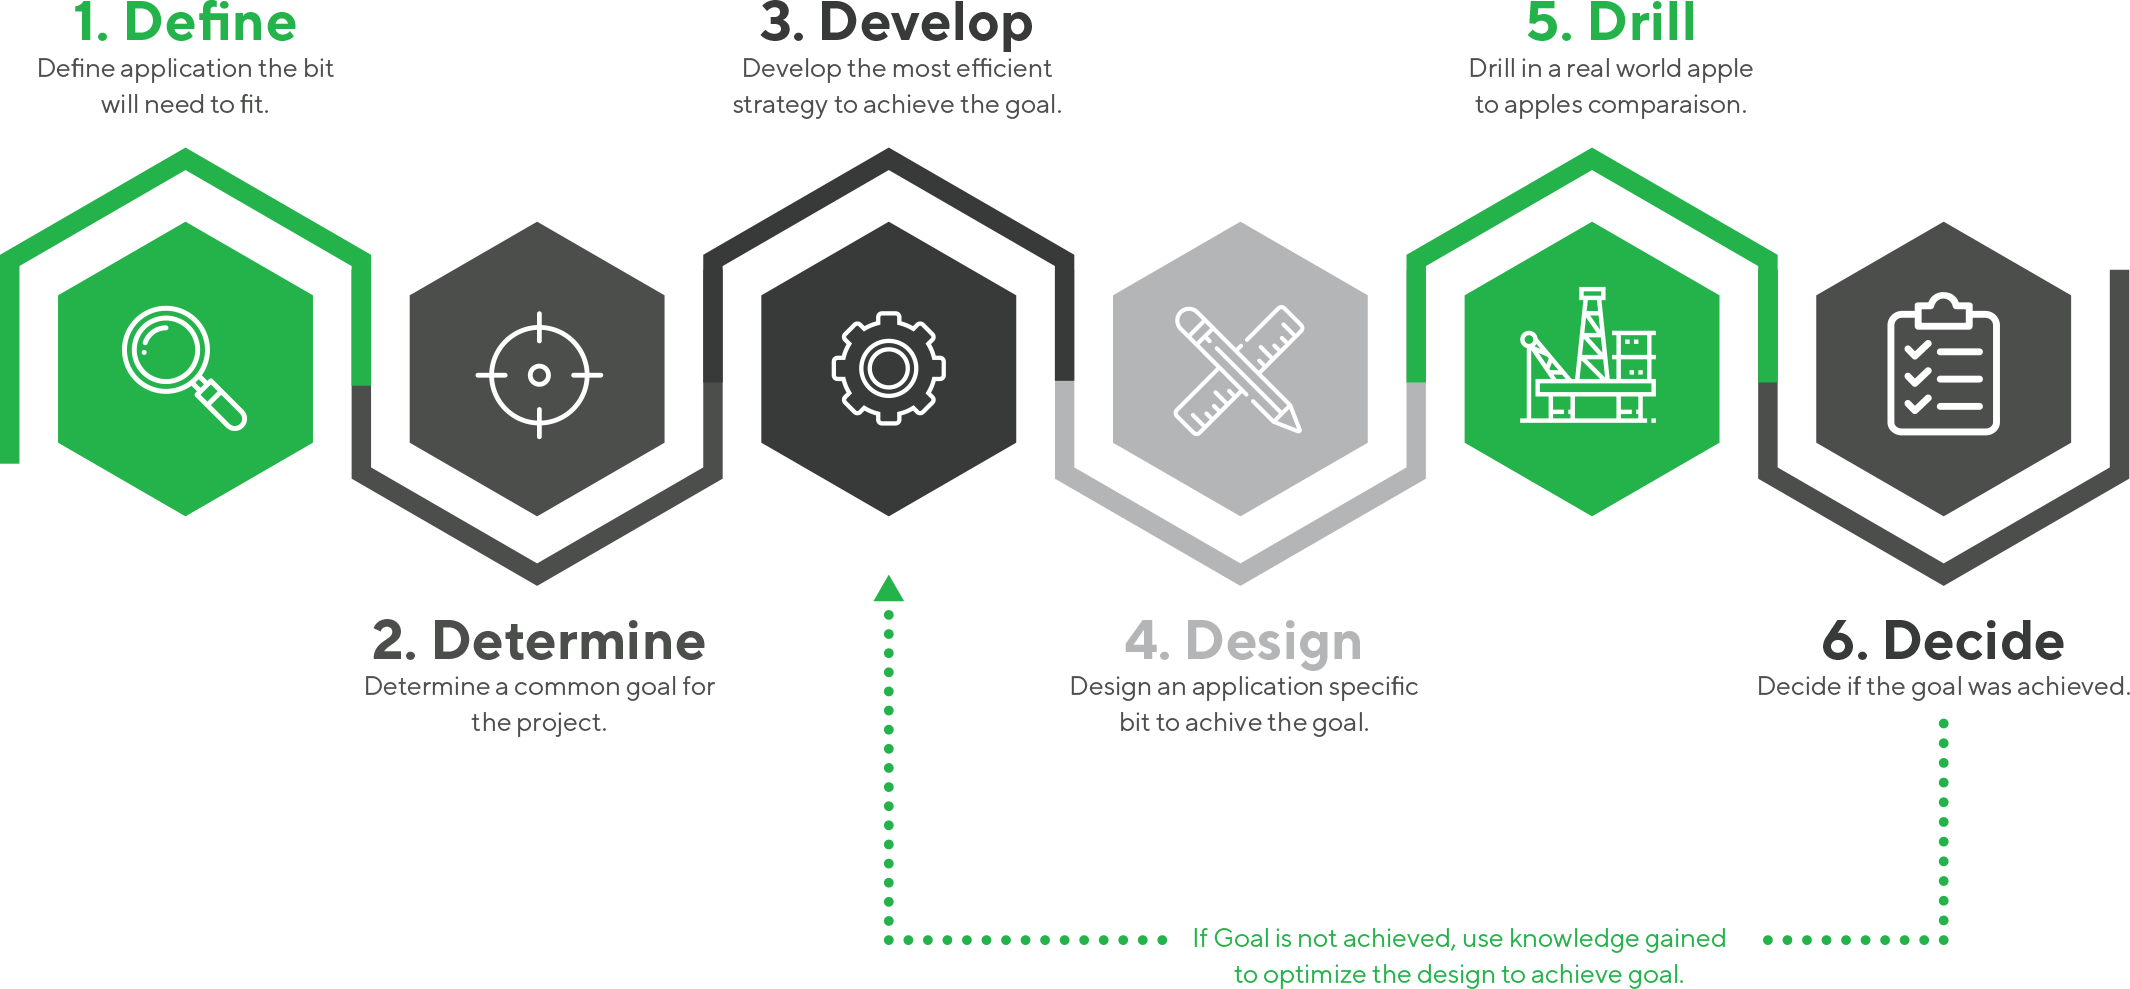 Taurex development process